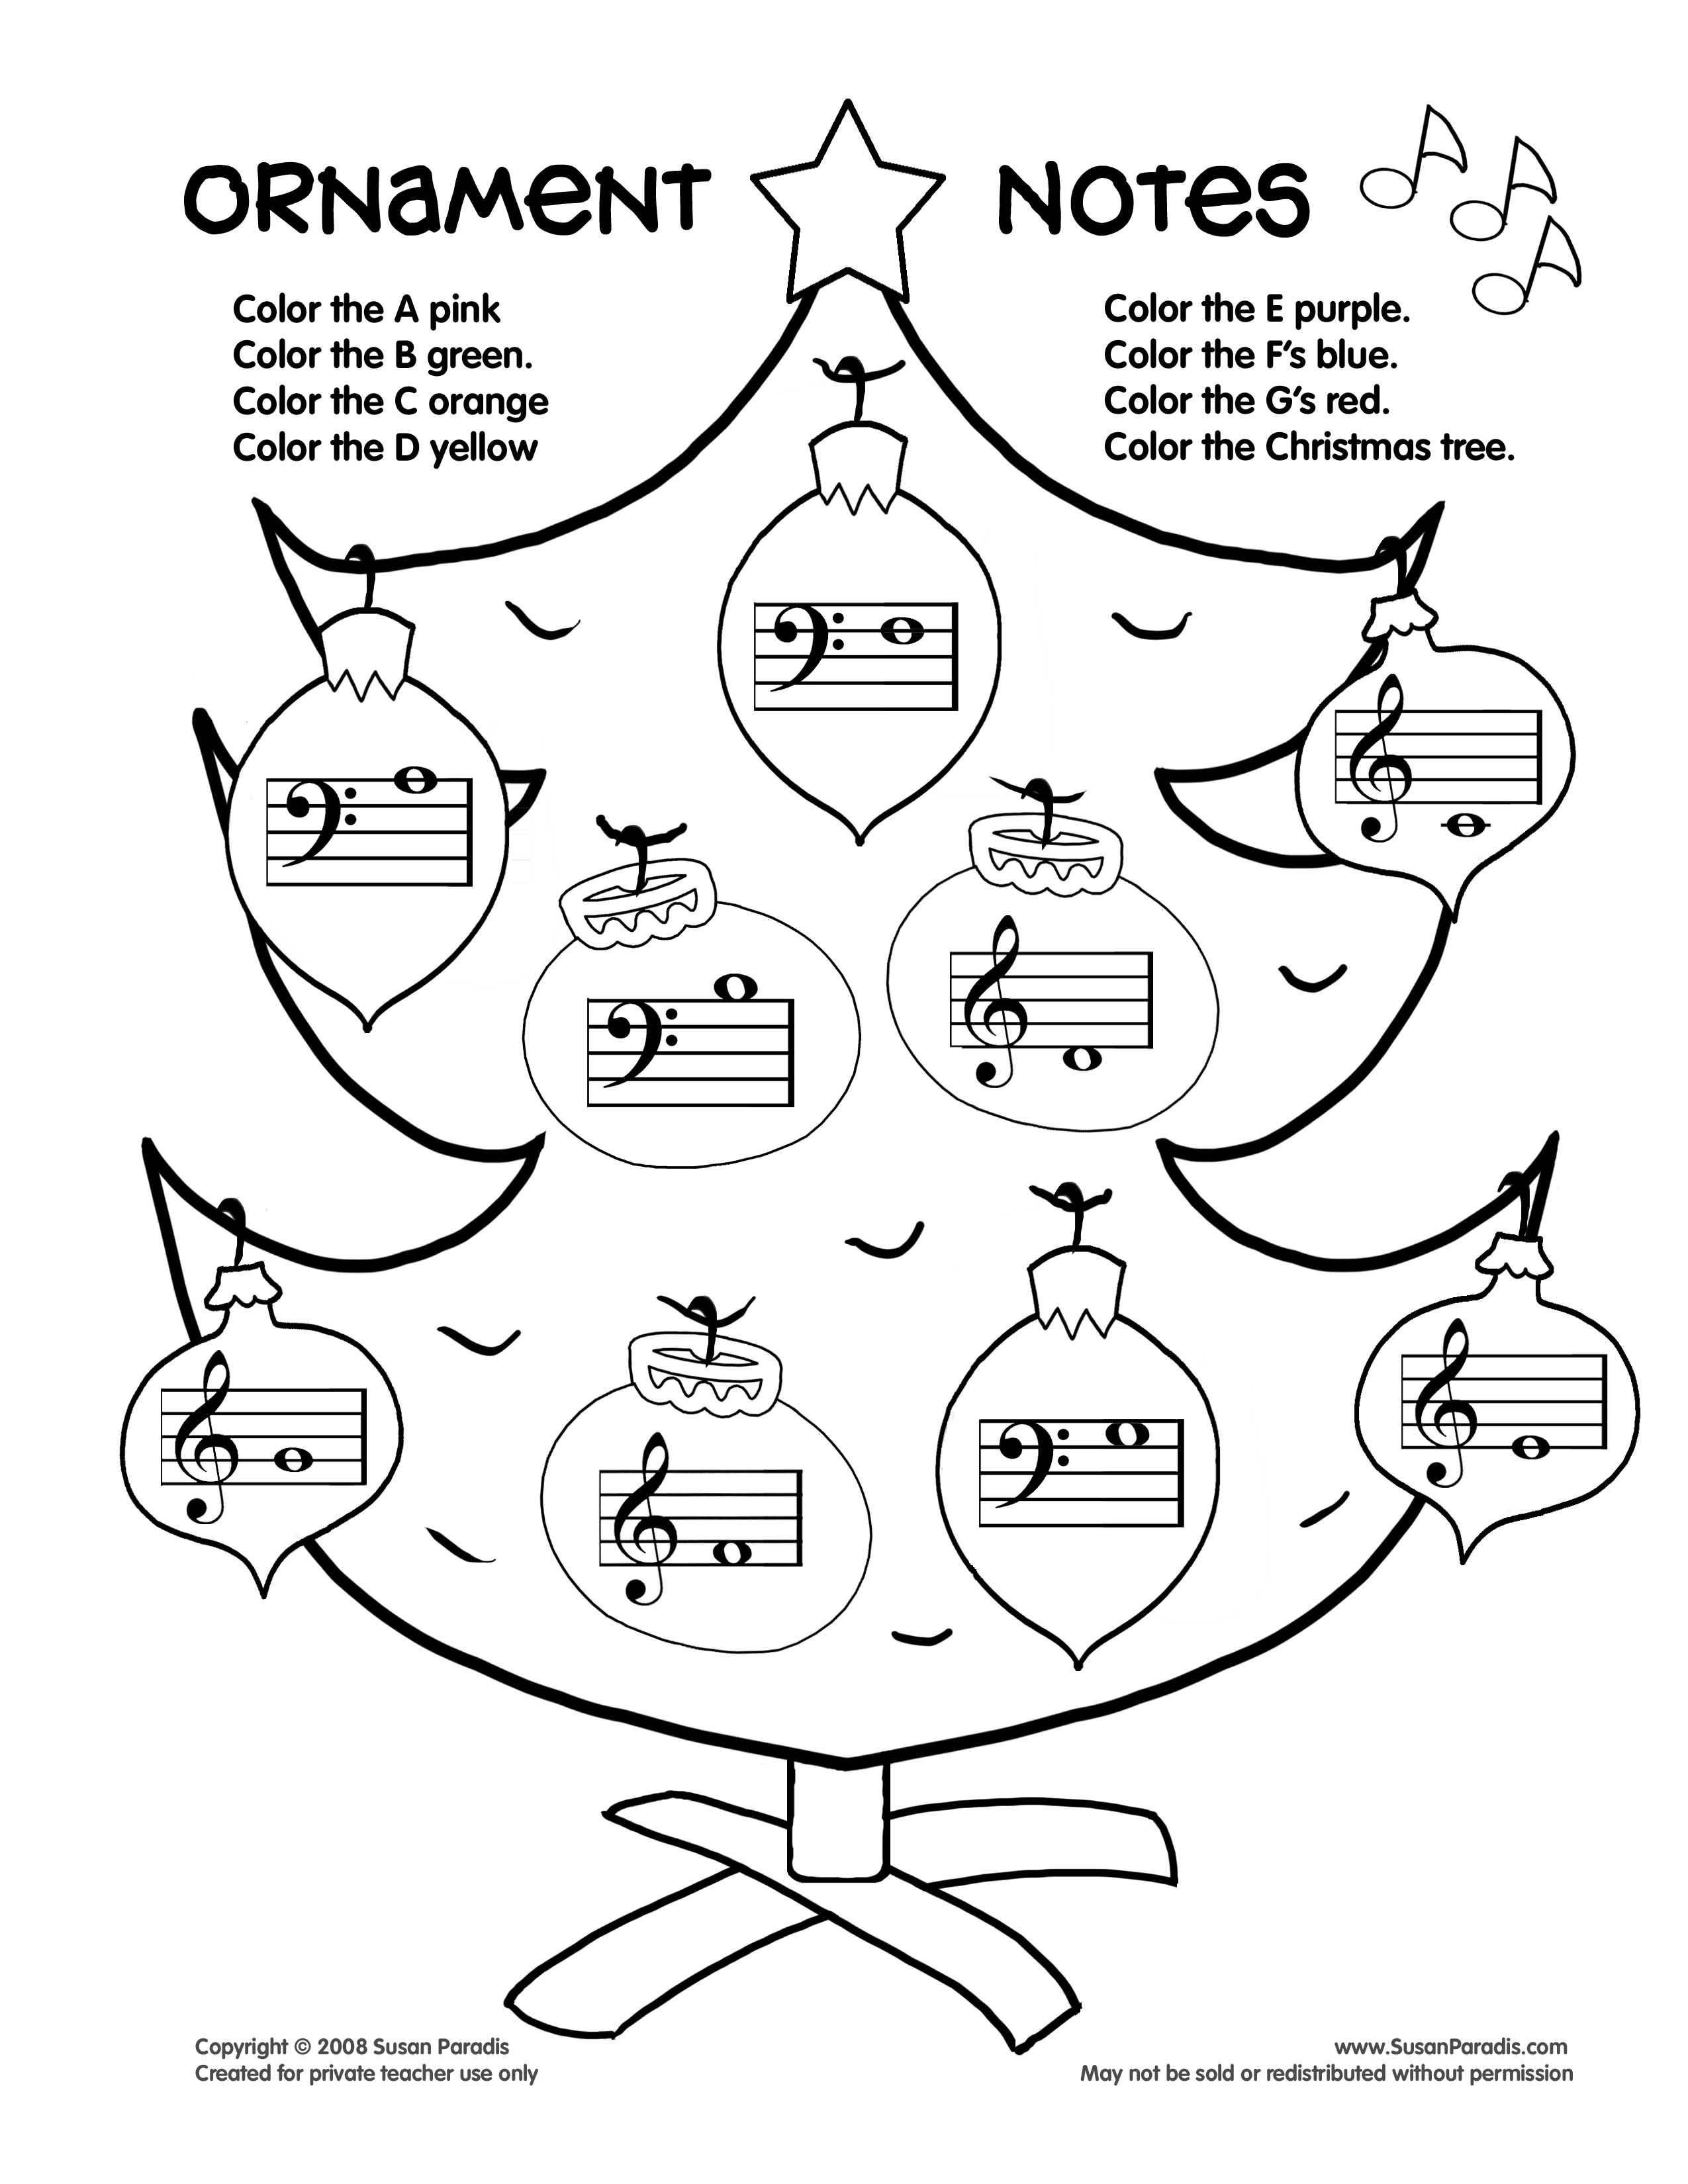 Music Notes Coloring Pages Preschoolers At Getdrawings